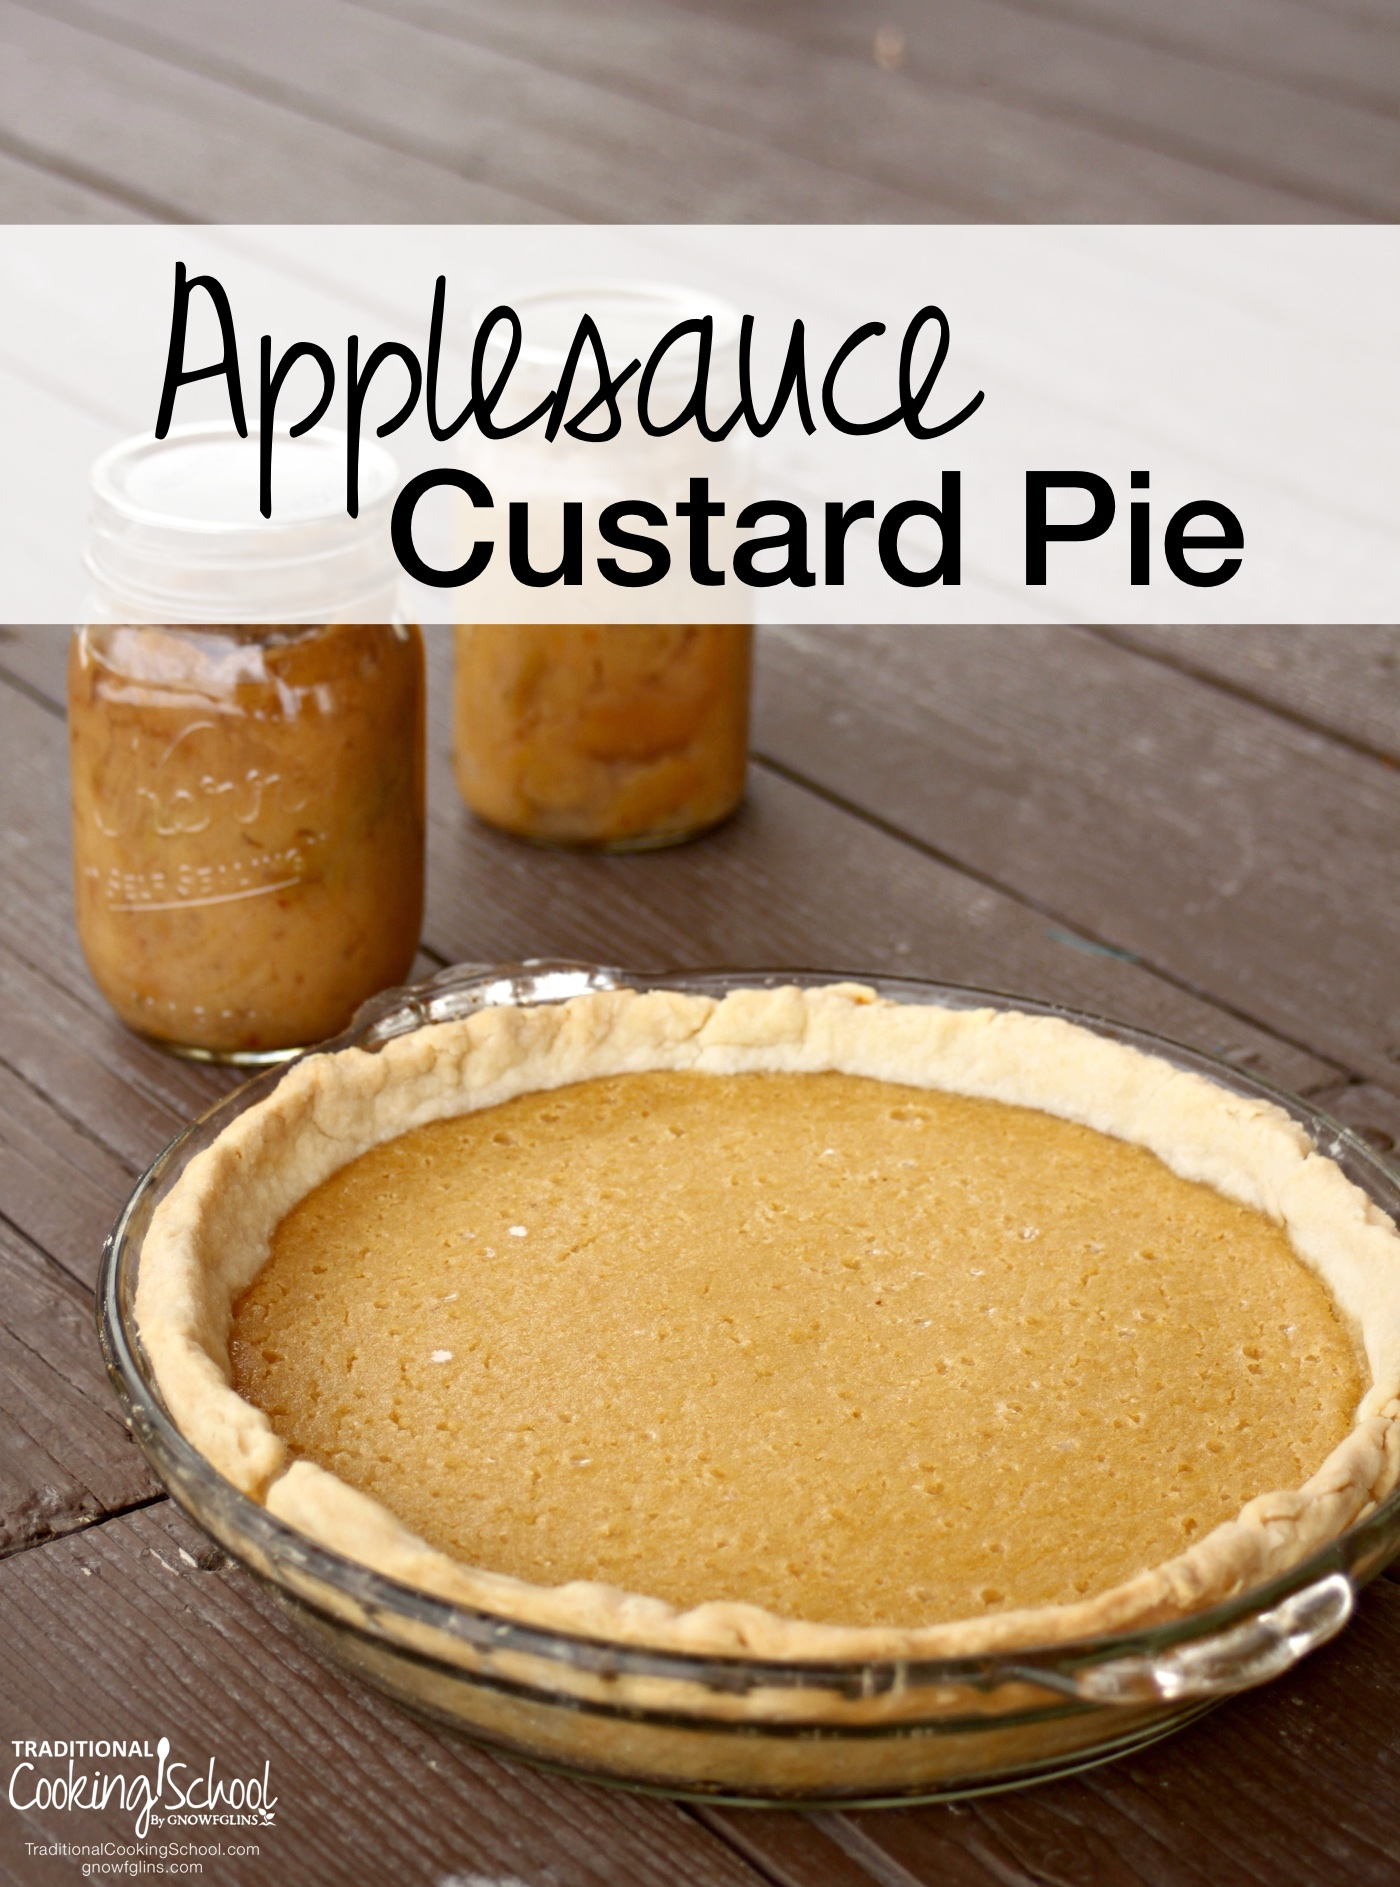 Applesauce Custard Pie | Applesauce... It's easy to can or freeze, with backyard gardeners and food preservationists filling their pantry shelves with many healthy, tasty calories for the long winter months. And while it is delicious simply as a snack right out of the jar, it has plenty of other sweet and savory uses, like Applesauce Custard Pie -- all the lovely flavor of a traditional apple pie with a smooth, custard-like filling. | TraditionalCookingSchool.com